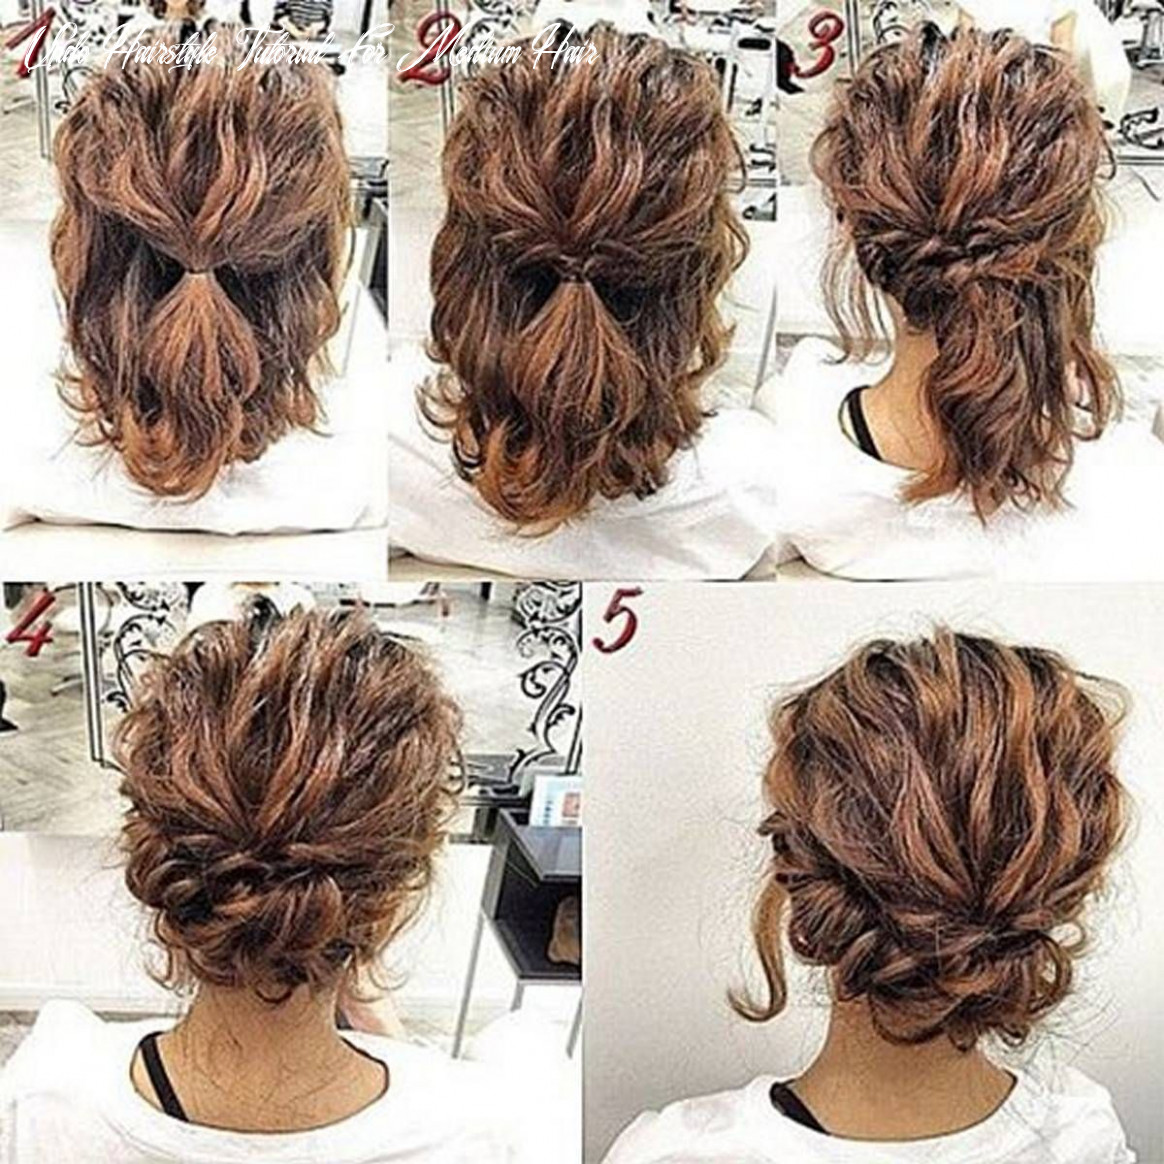 Hairstyles diy and tutorial for all hair lengths 12 | simple prom